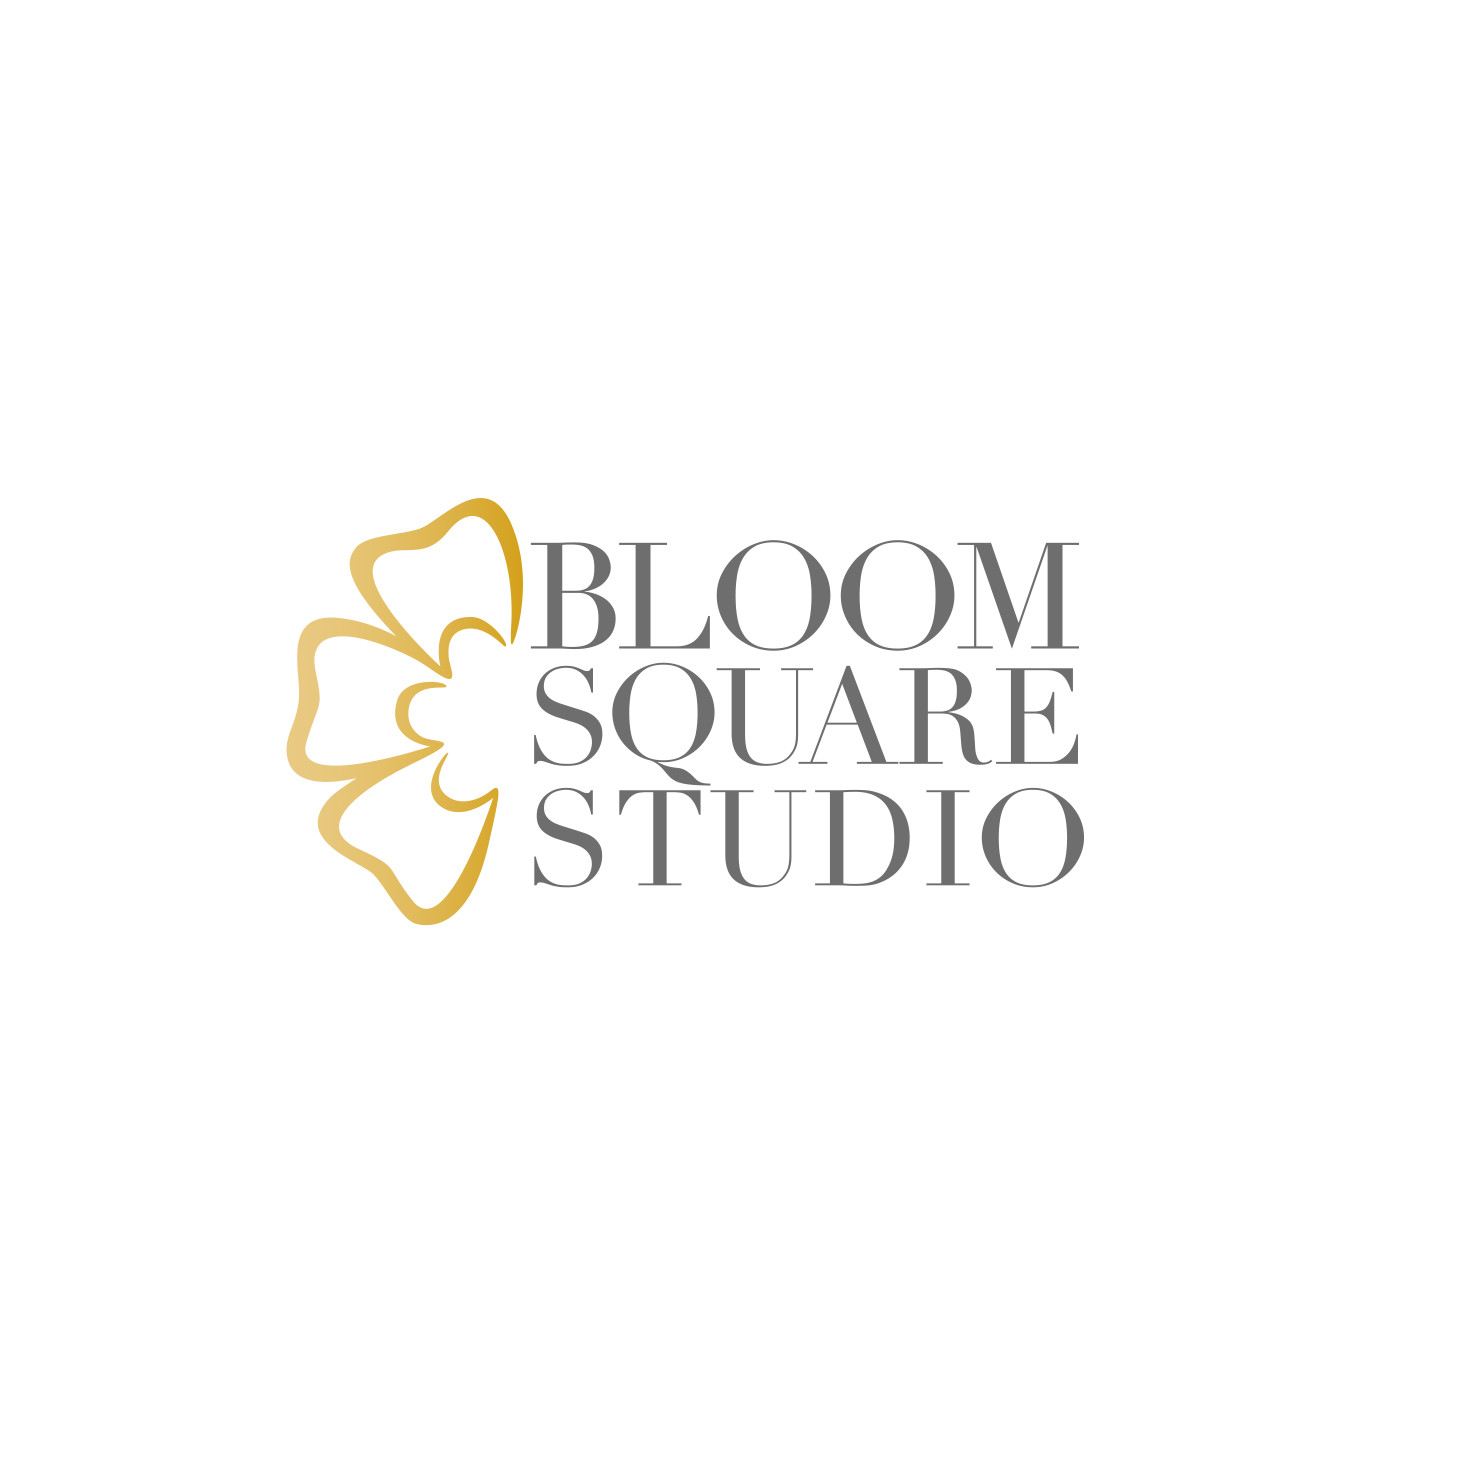 BloomSquare